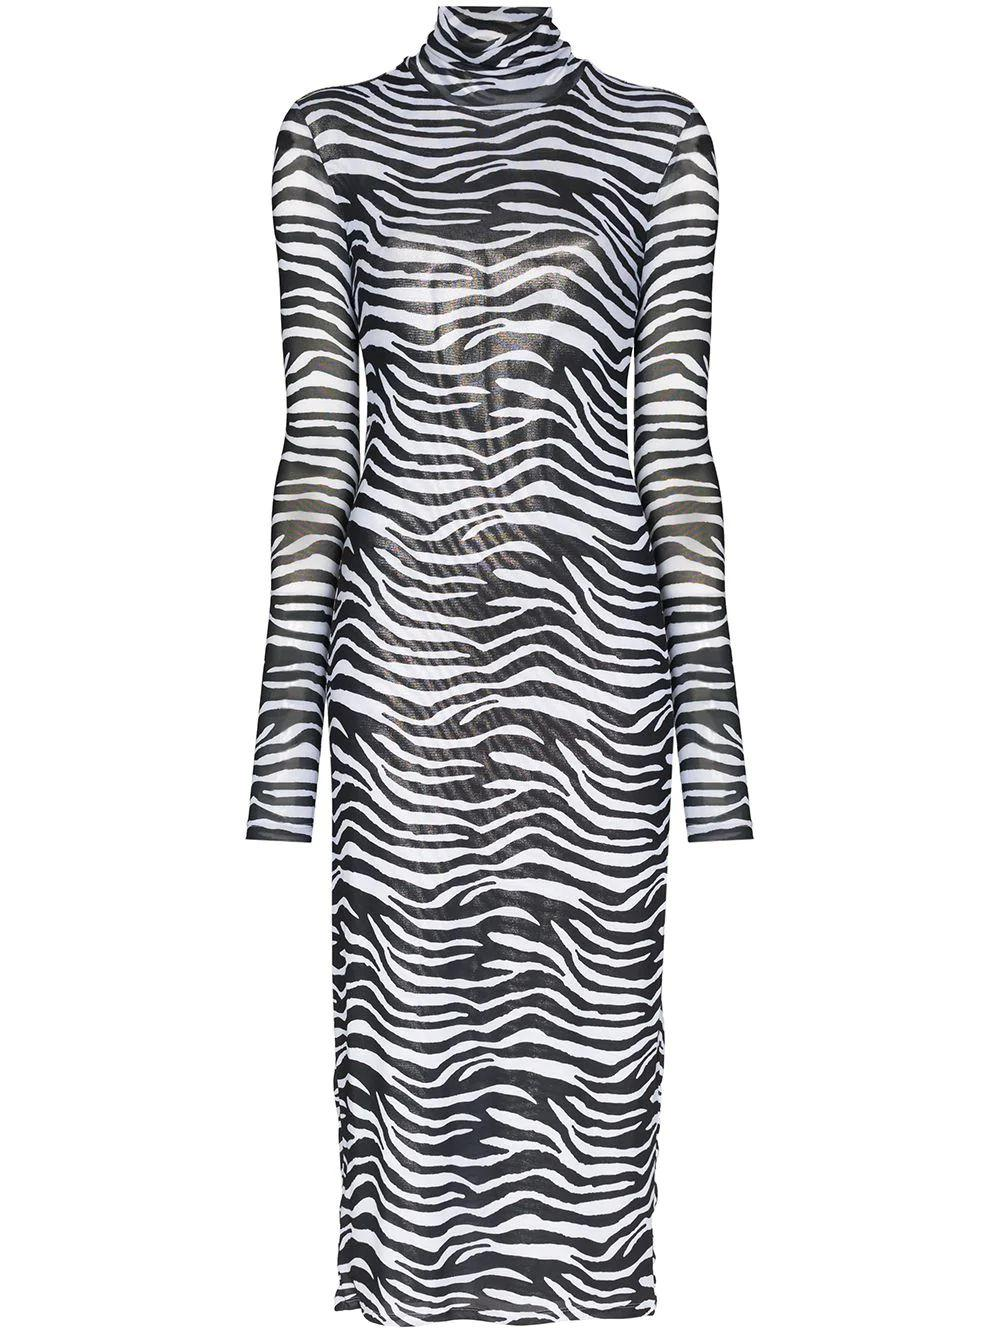 Brae Zebra Printed Mesh Dress